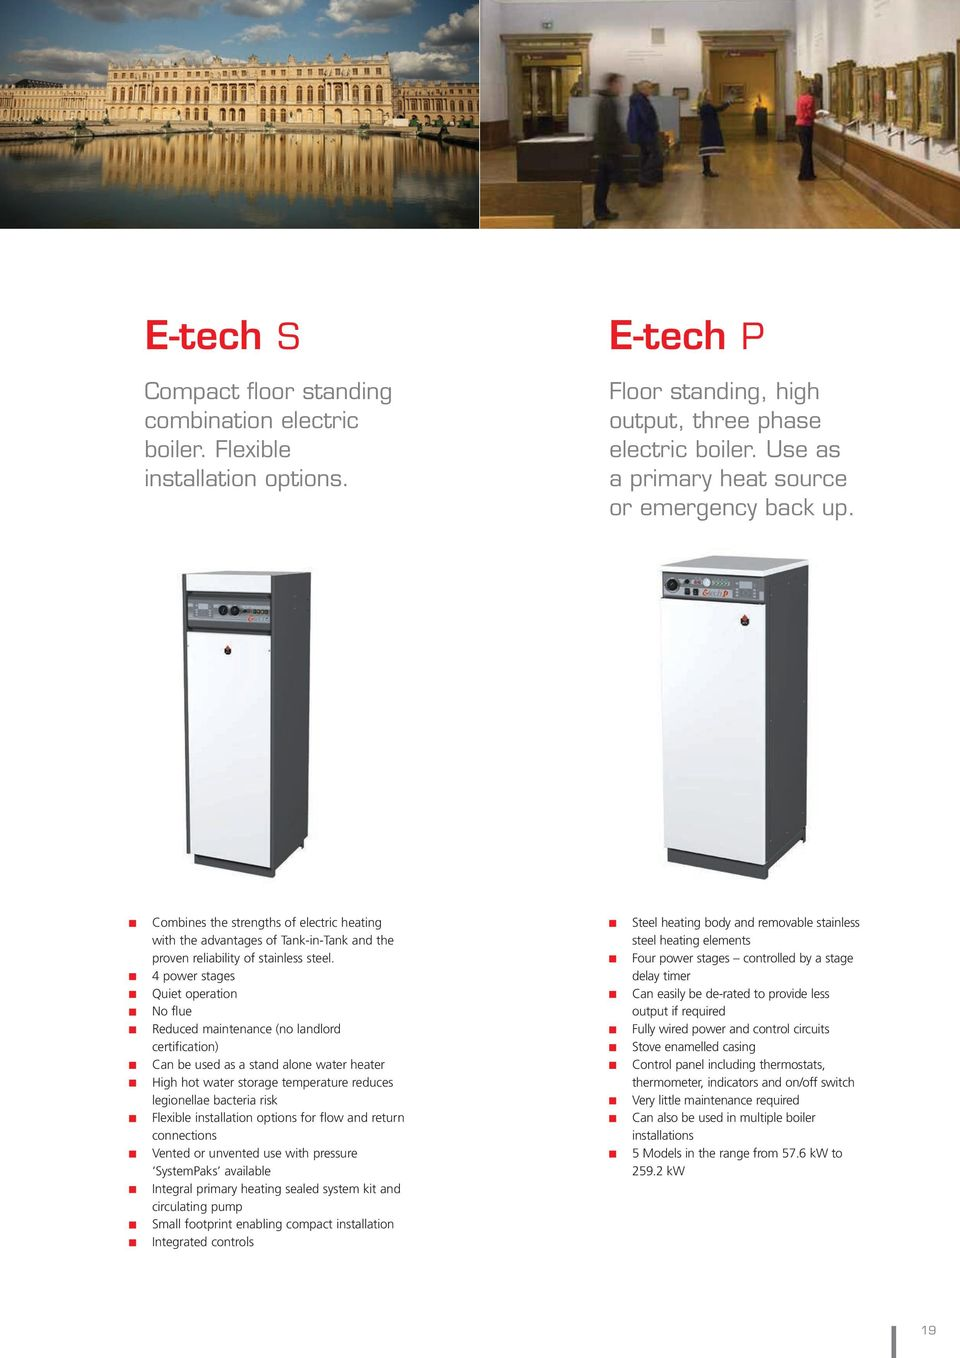 4 power stages Quiet operation No flue Reduced maintenance (no landlord certification) Can be used as a stand alone water heater High hot water storage temperature reduces legionellae bacteria risk